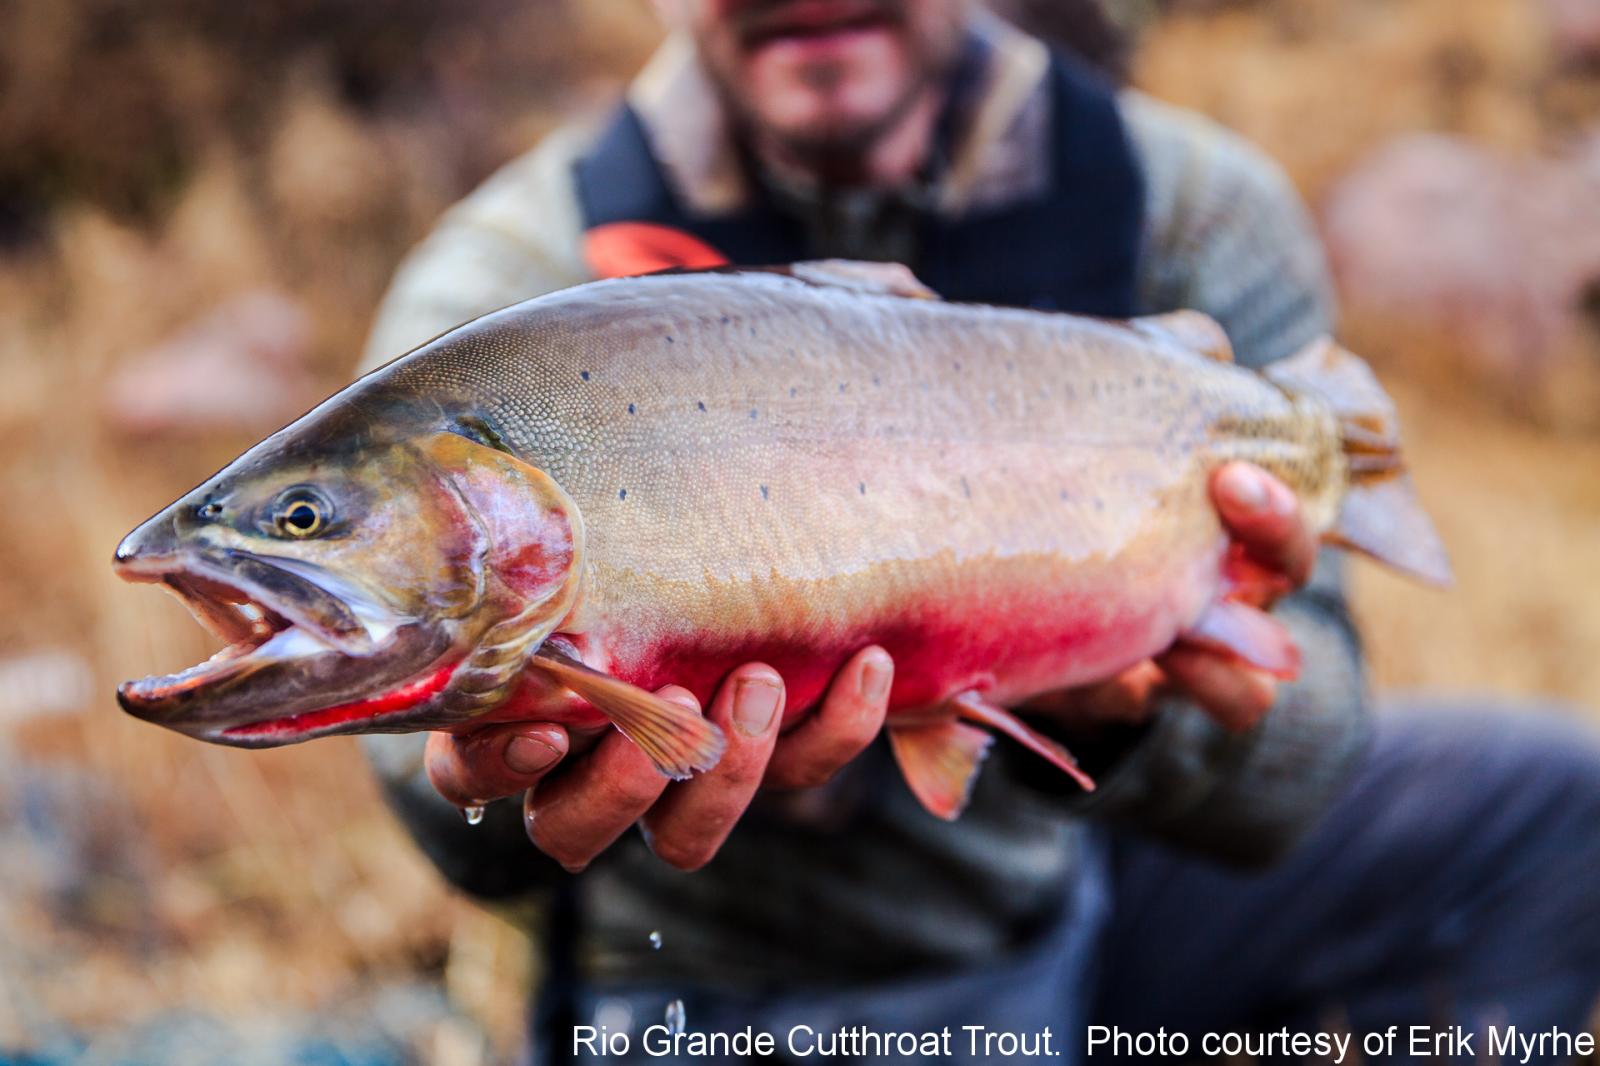 Rio Grande Cutthroat. Erik Myhre Photographer